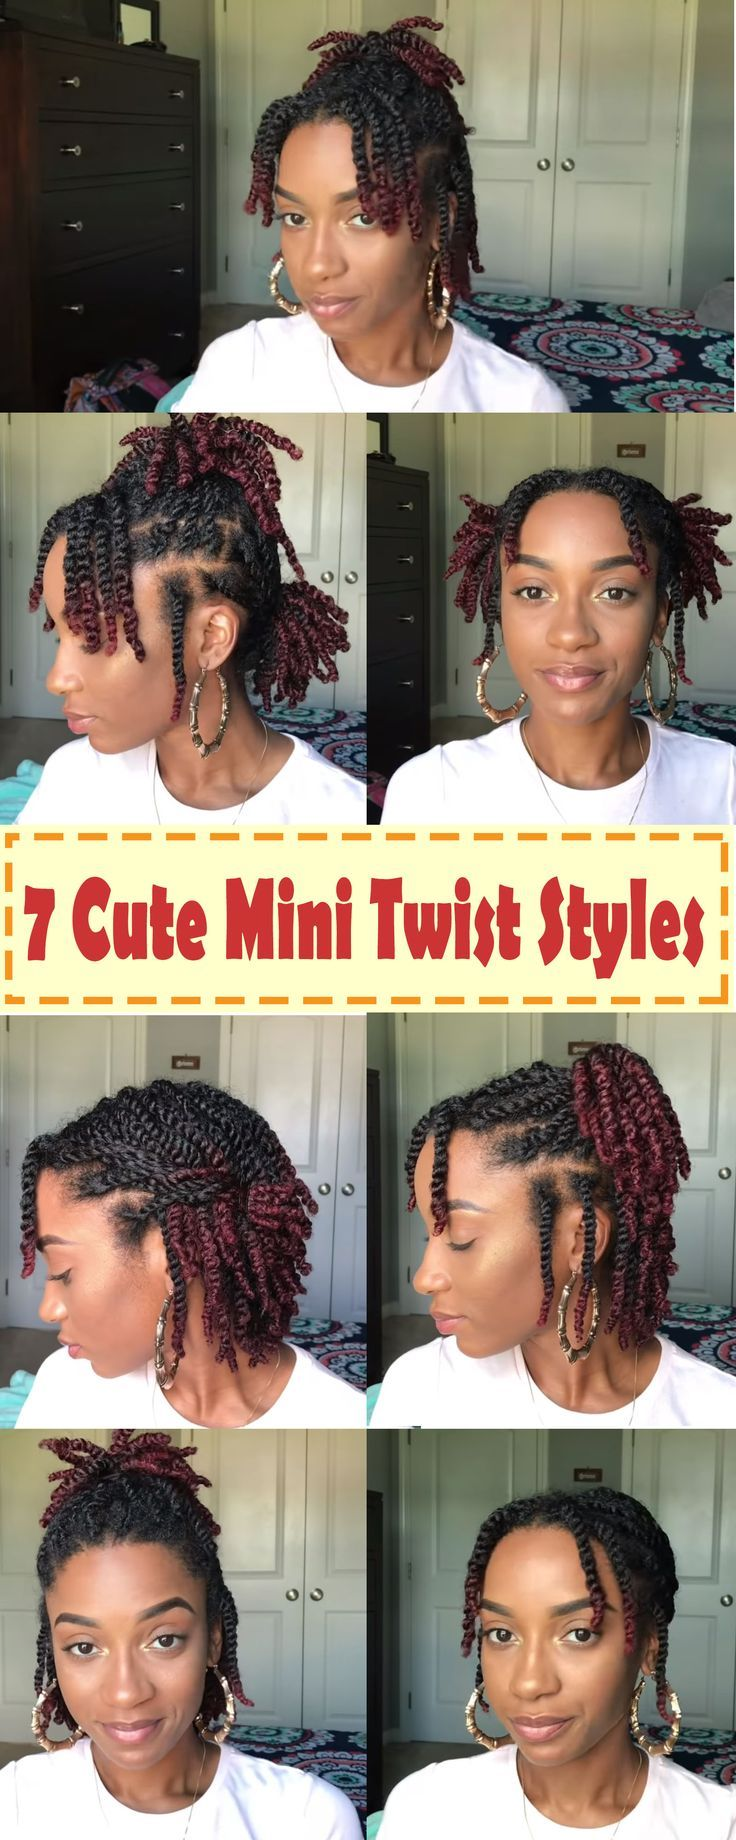 7 Quick And Easy Styles You Can Do With Your Mini Twists Hair Twist Styles Natural Hair Twists Natural Hair Styles Easy